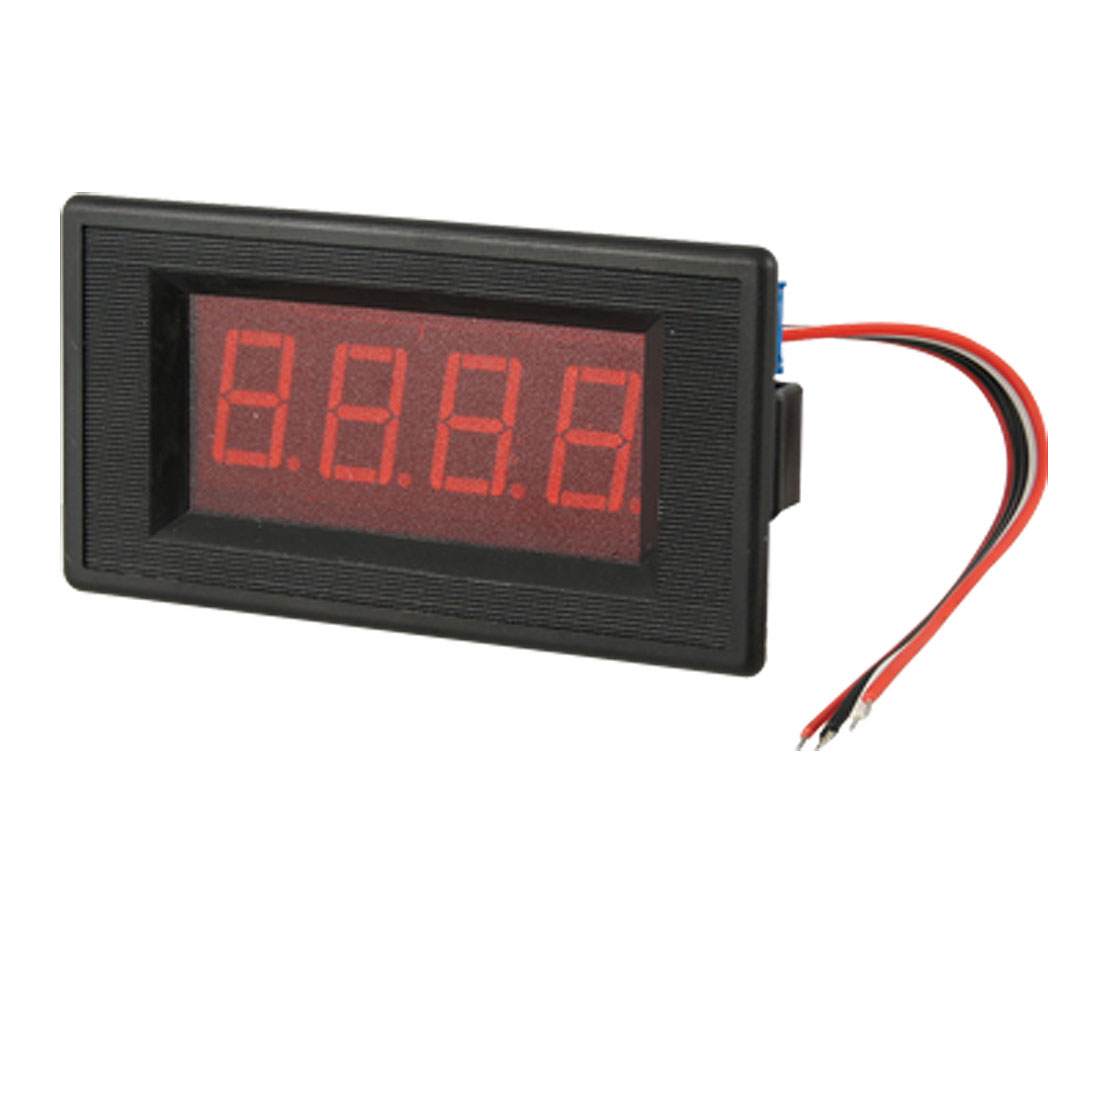 Mini DC 2V Voltage Panel Meter Counter 3 1/2 Digits Display